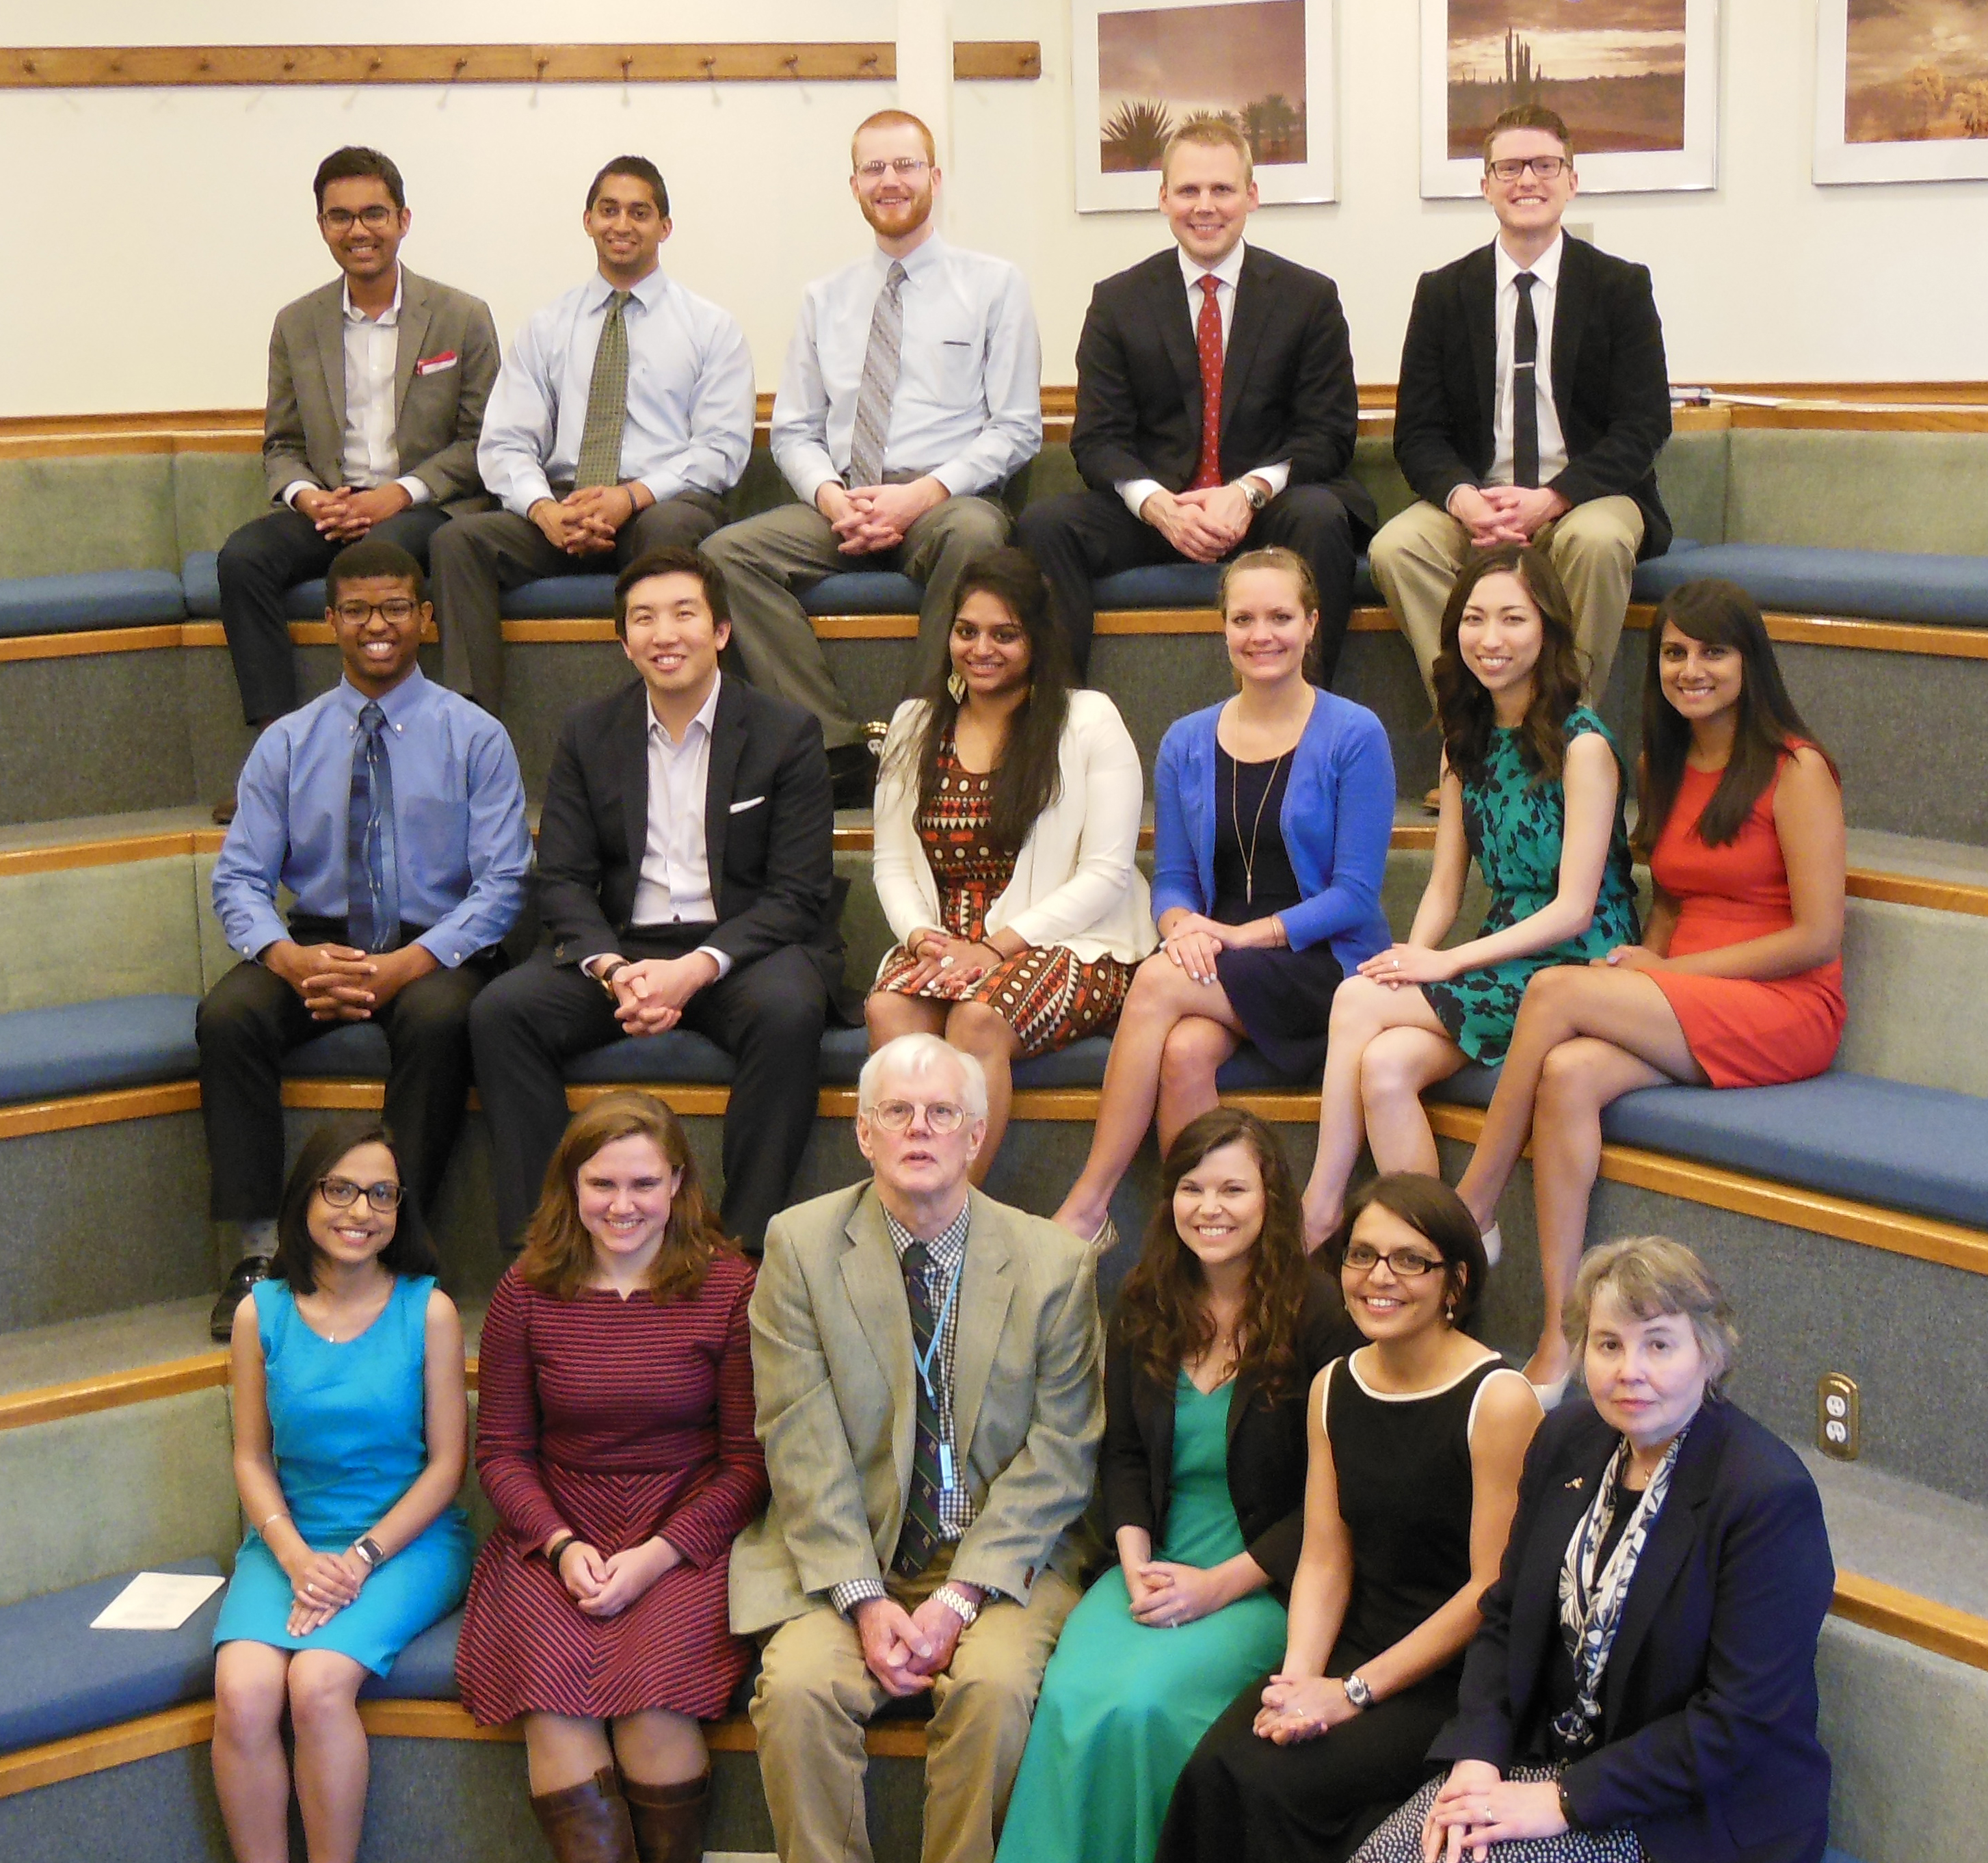 d8fb2e0bba6 The School of Medicine chapter of the AOA Honor Medical Society inducted  its Class of 2016